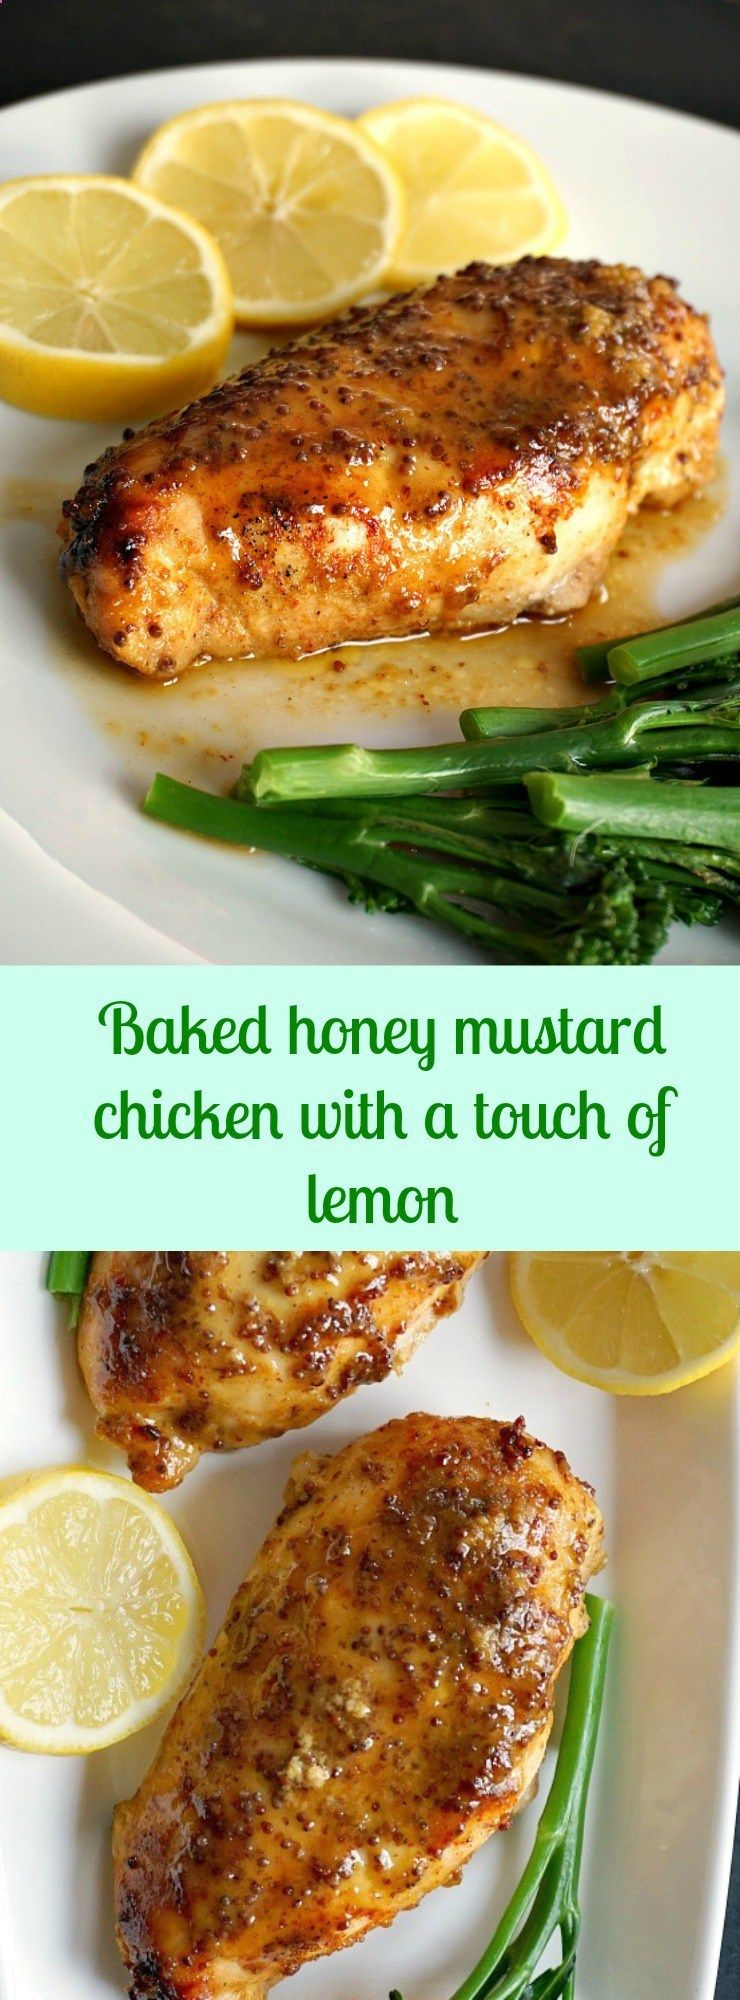 Baked honey mustard chicken with a touch of lemon, an amzing meal for two. Ideal for Valentines Day or just a romantic dinner.